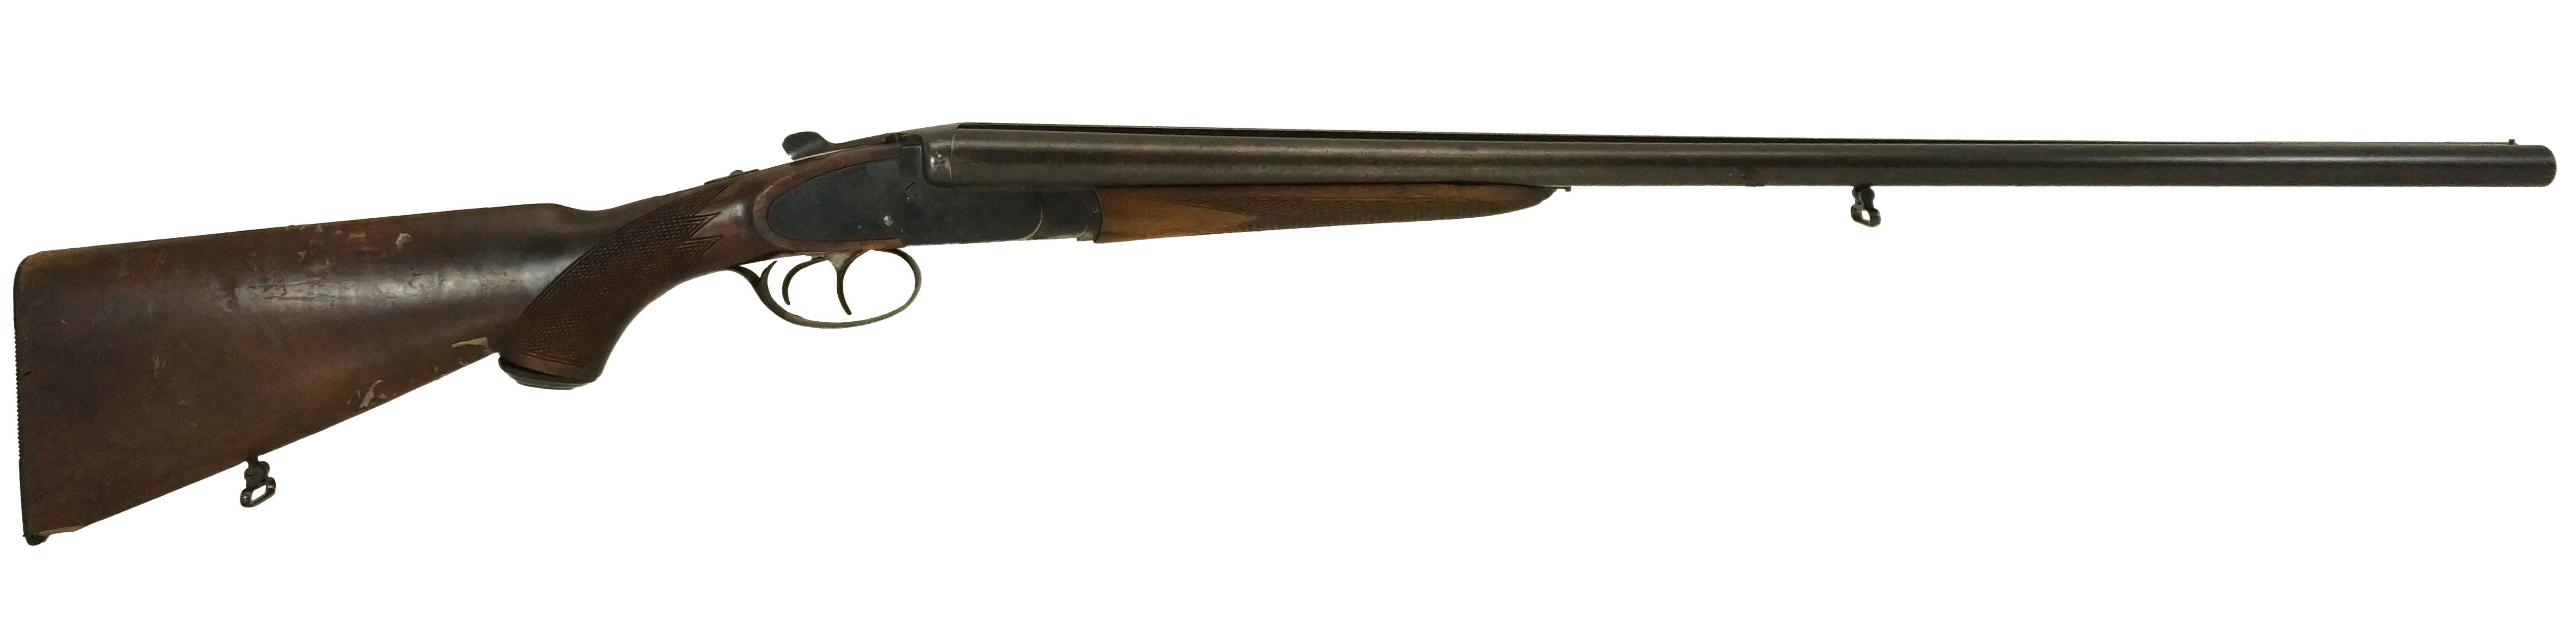 "BRNO ZP149, 16GA, 28"" Barrel, *Fair, Incomplete*"